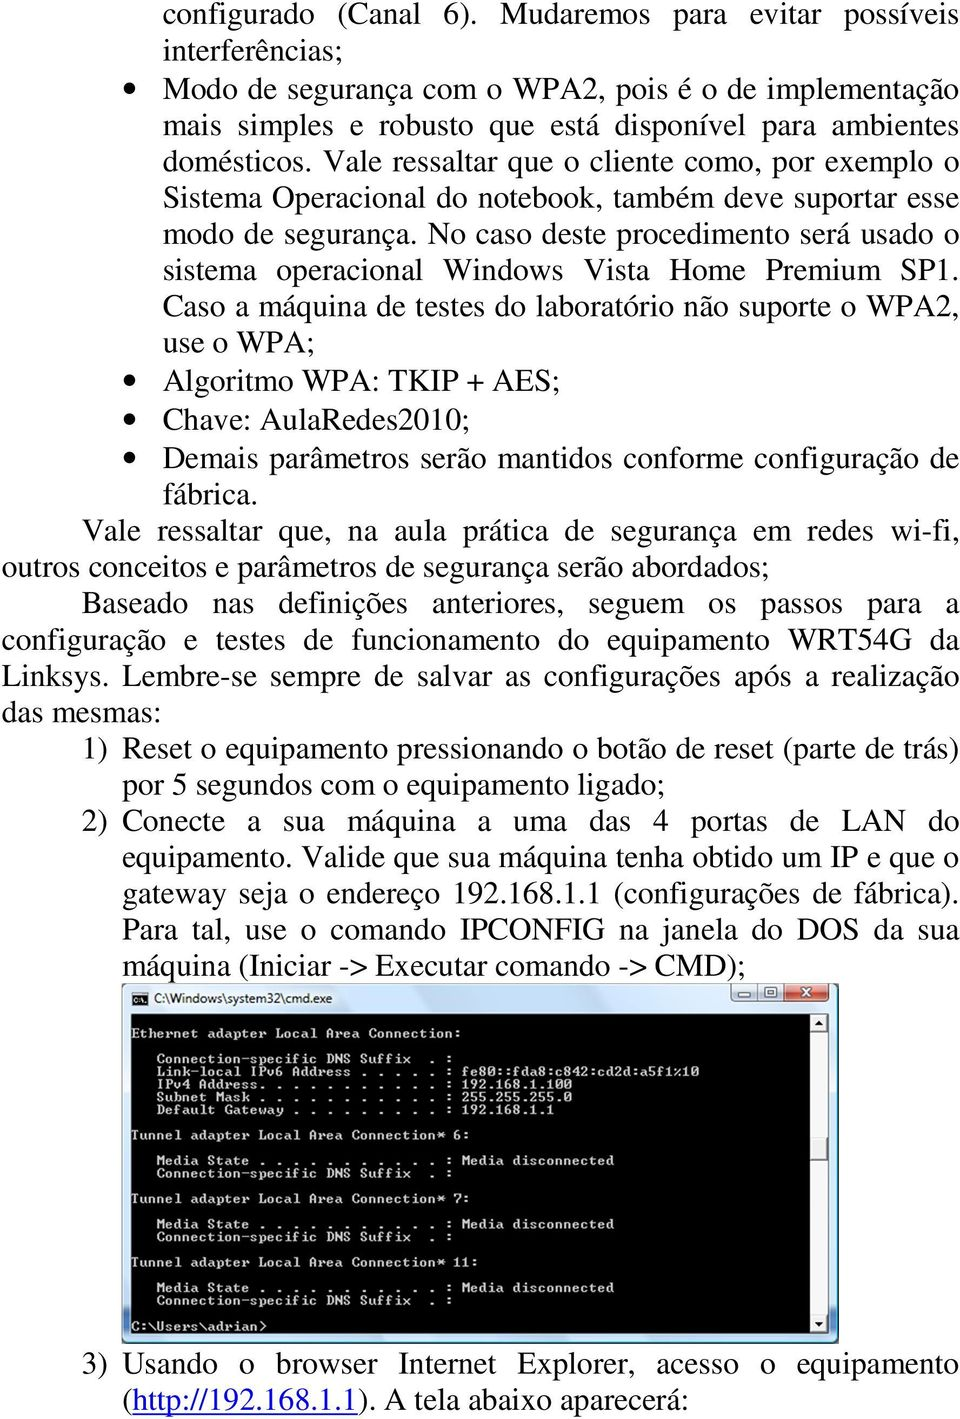 No caso deste procedimento será usado o sistema operacional Windows Vista Home Premium SP1.